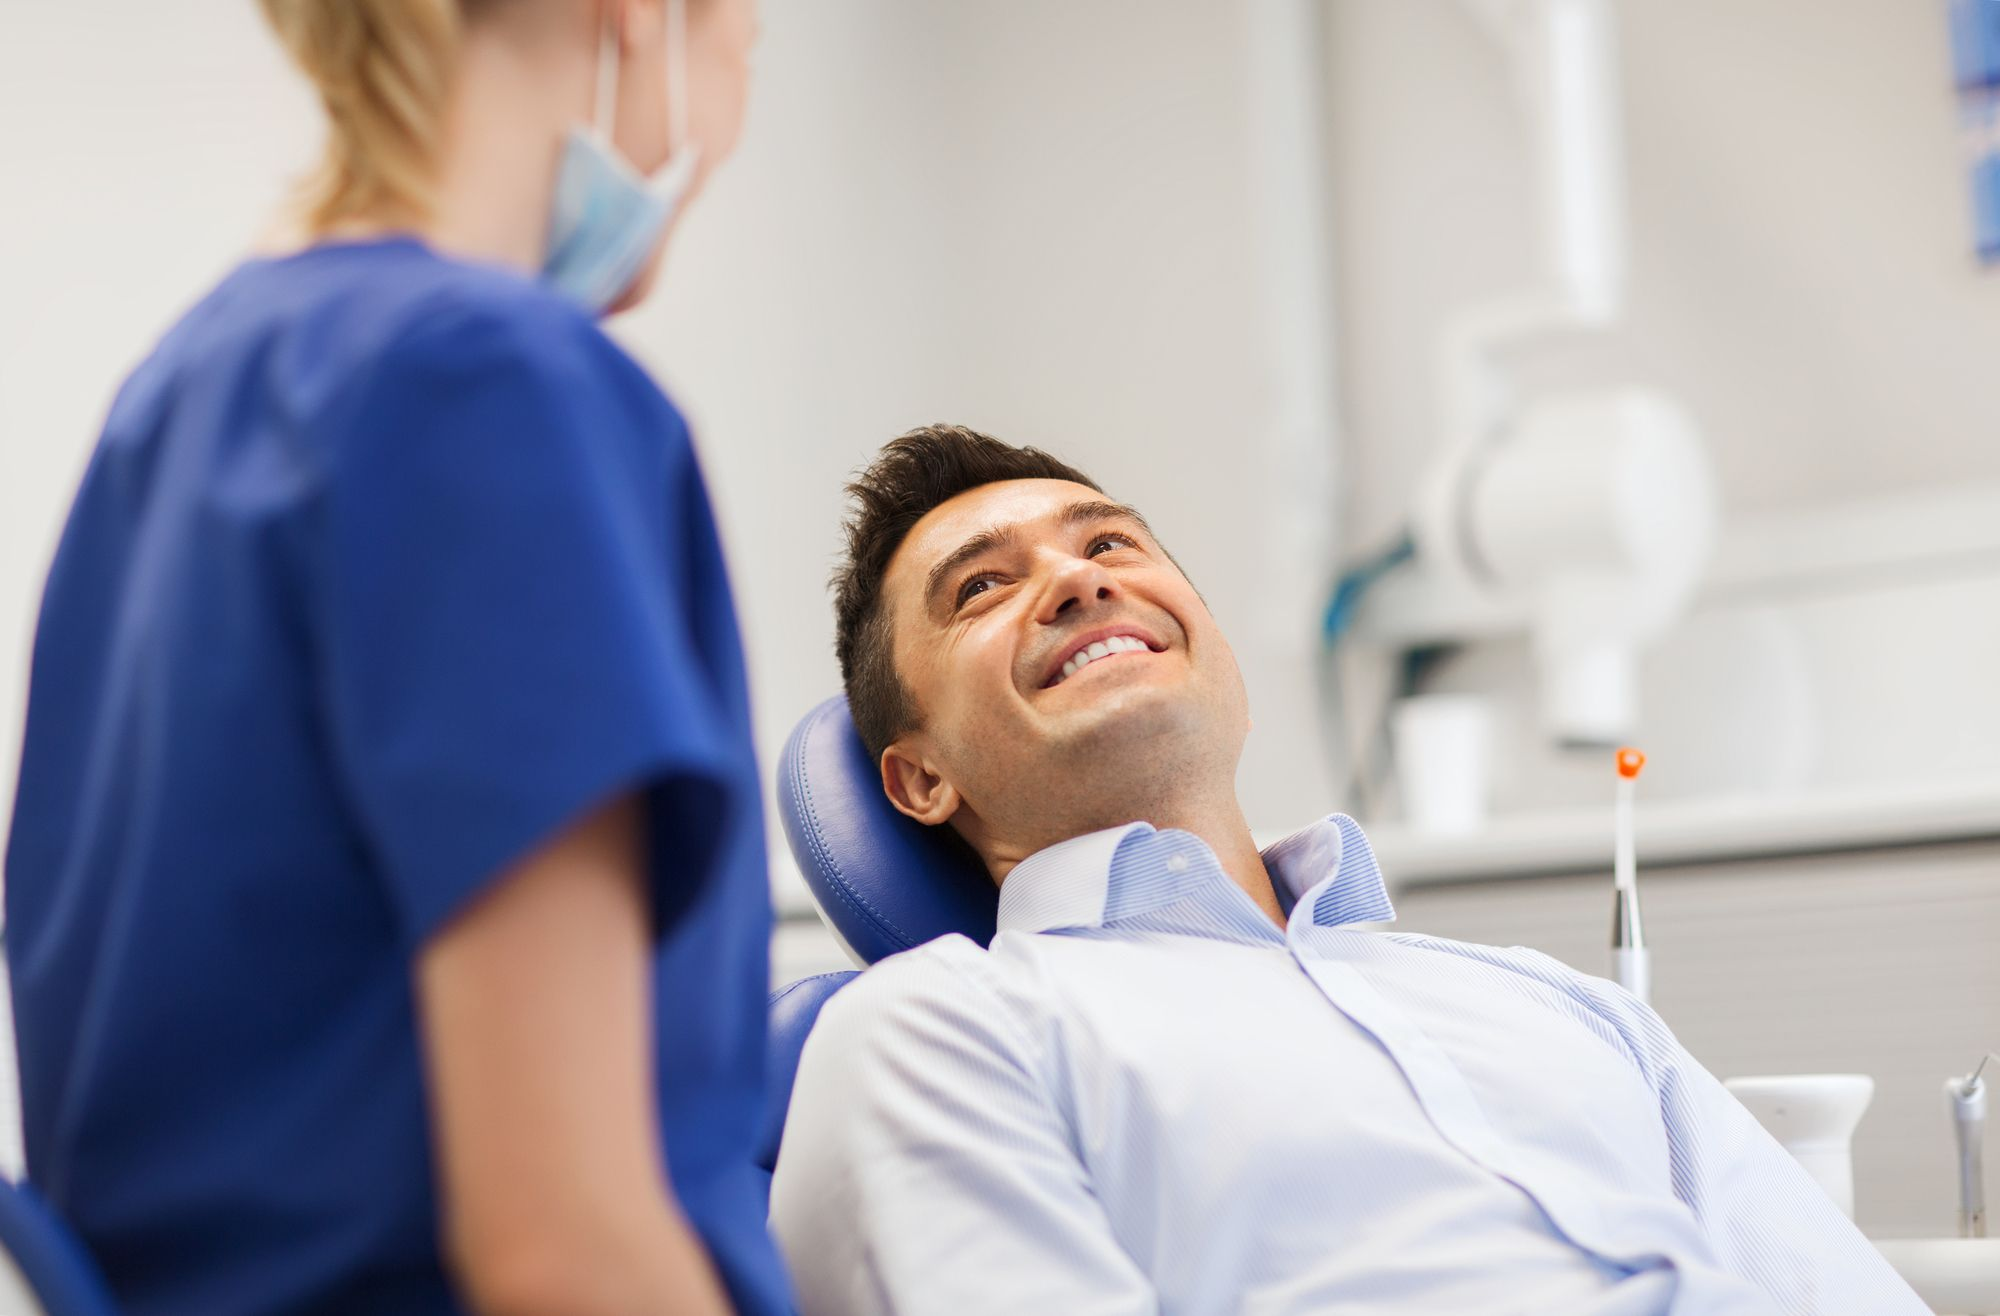 Although most root canals end up successful offering long